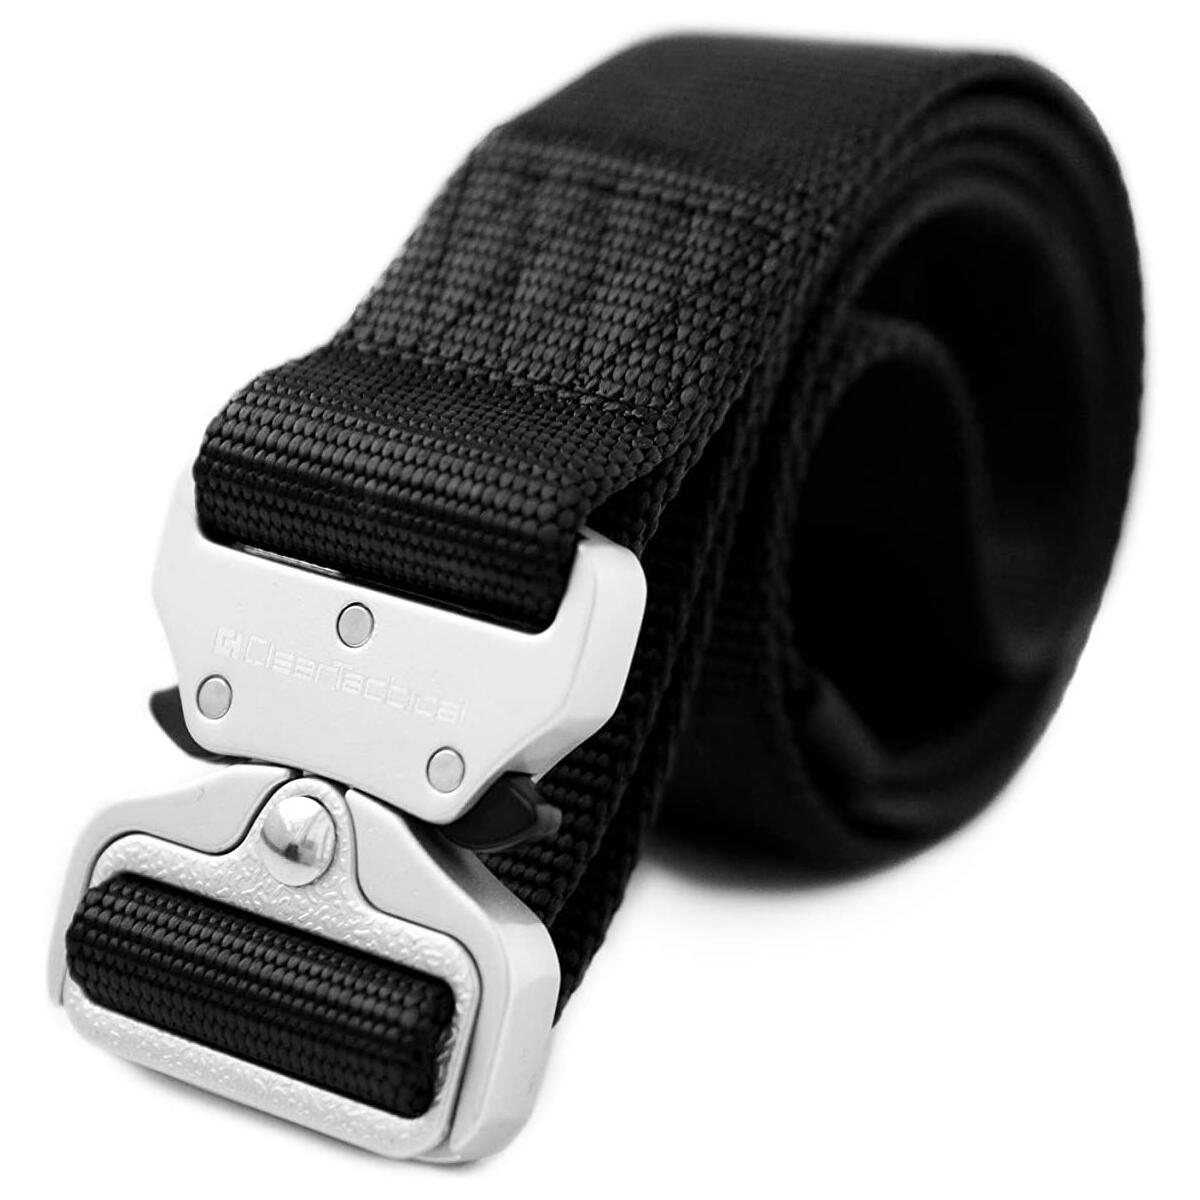 Clear Tactical Duty Belt | Heavy-Duty Metal Buckle Rated at 650+ lbs, 1.5